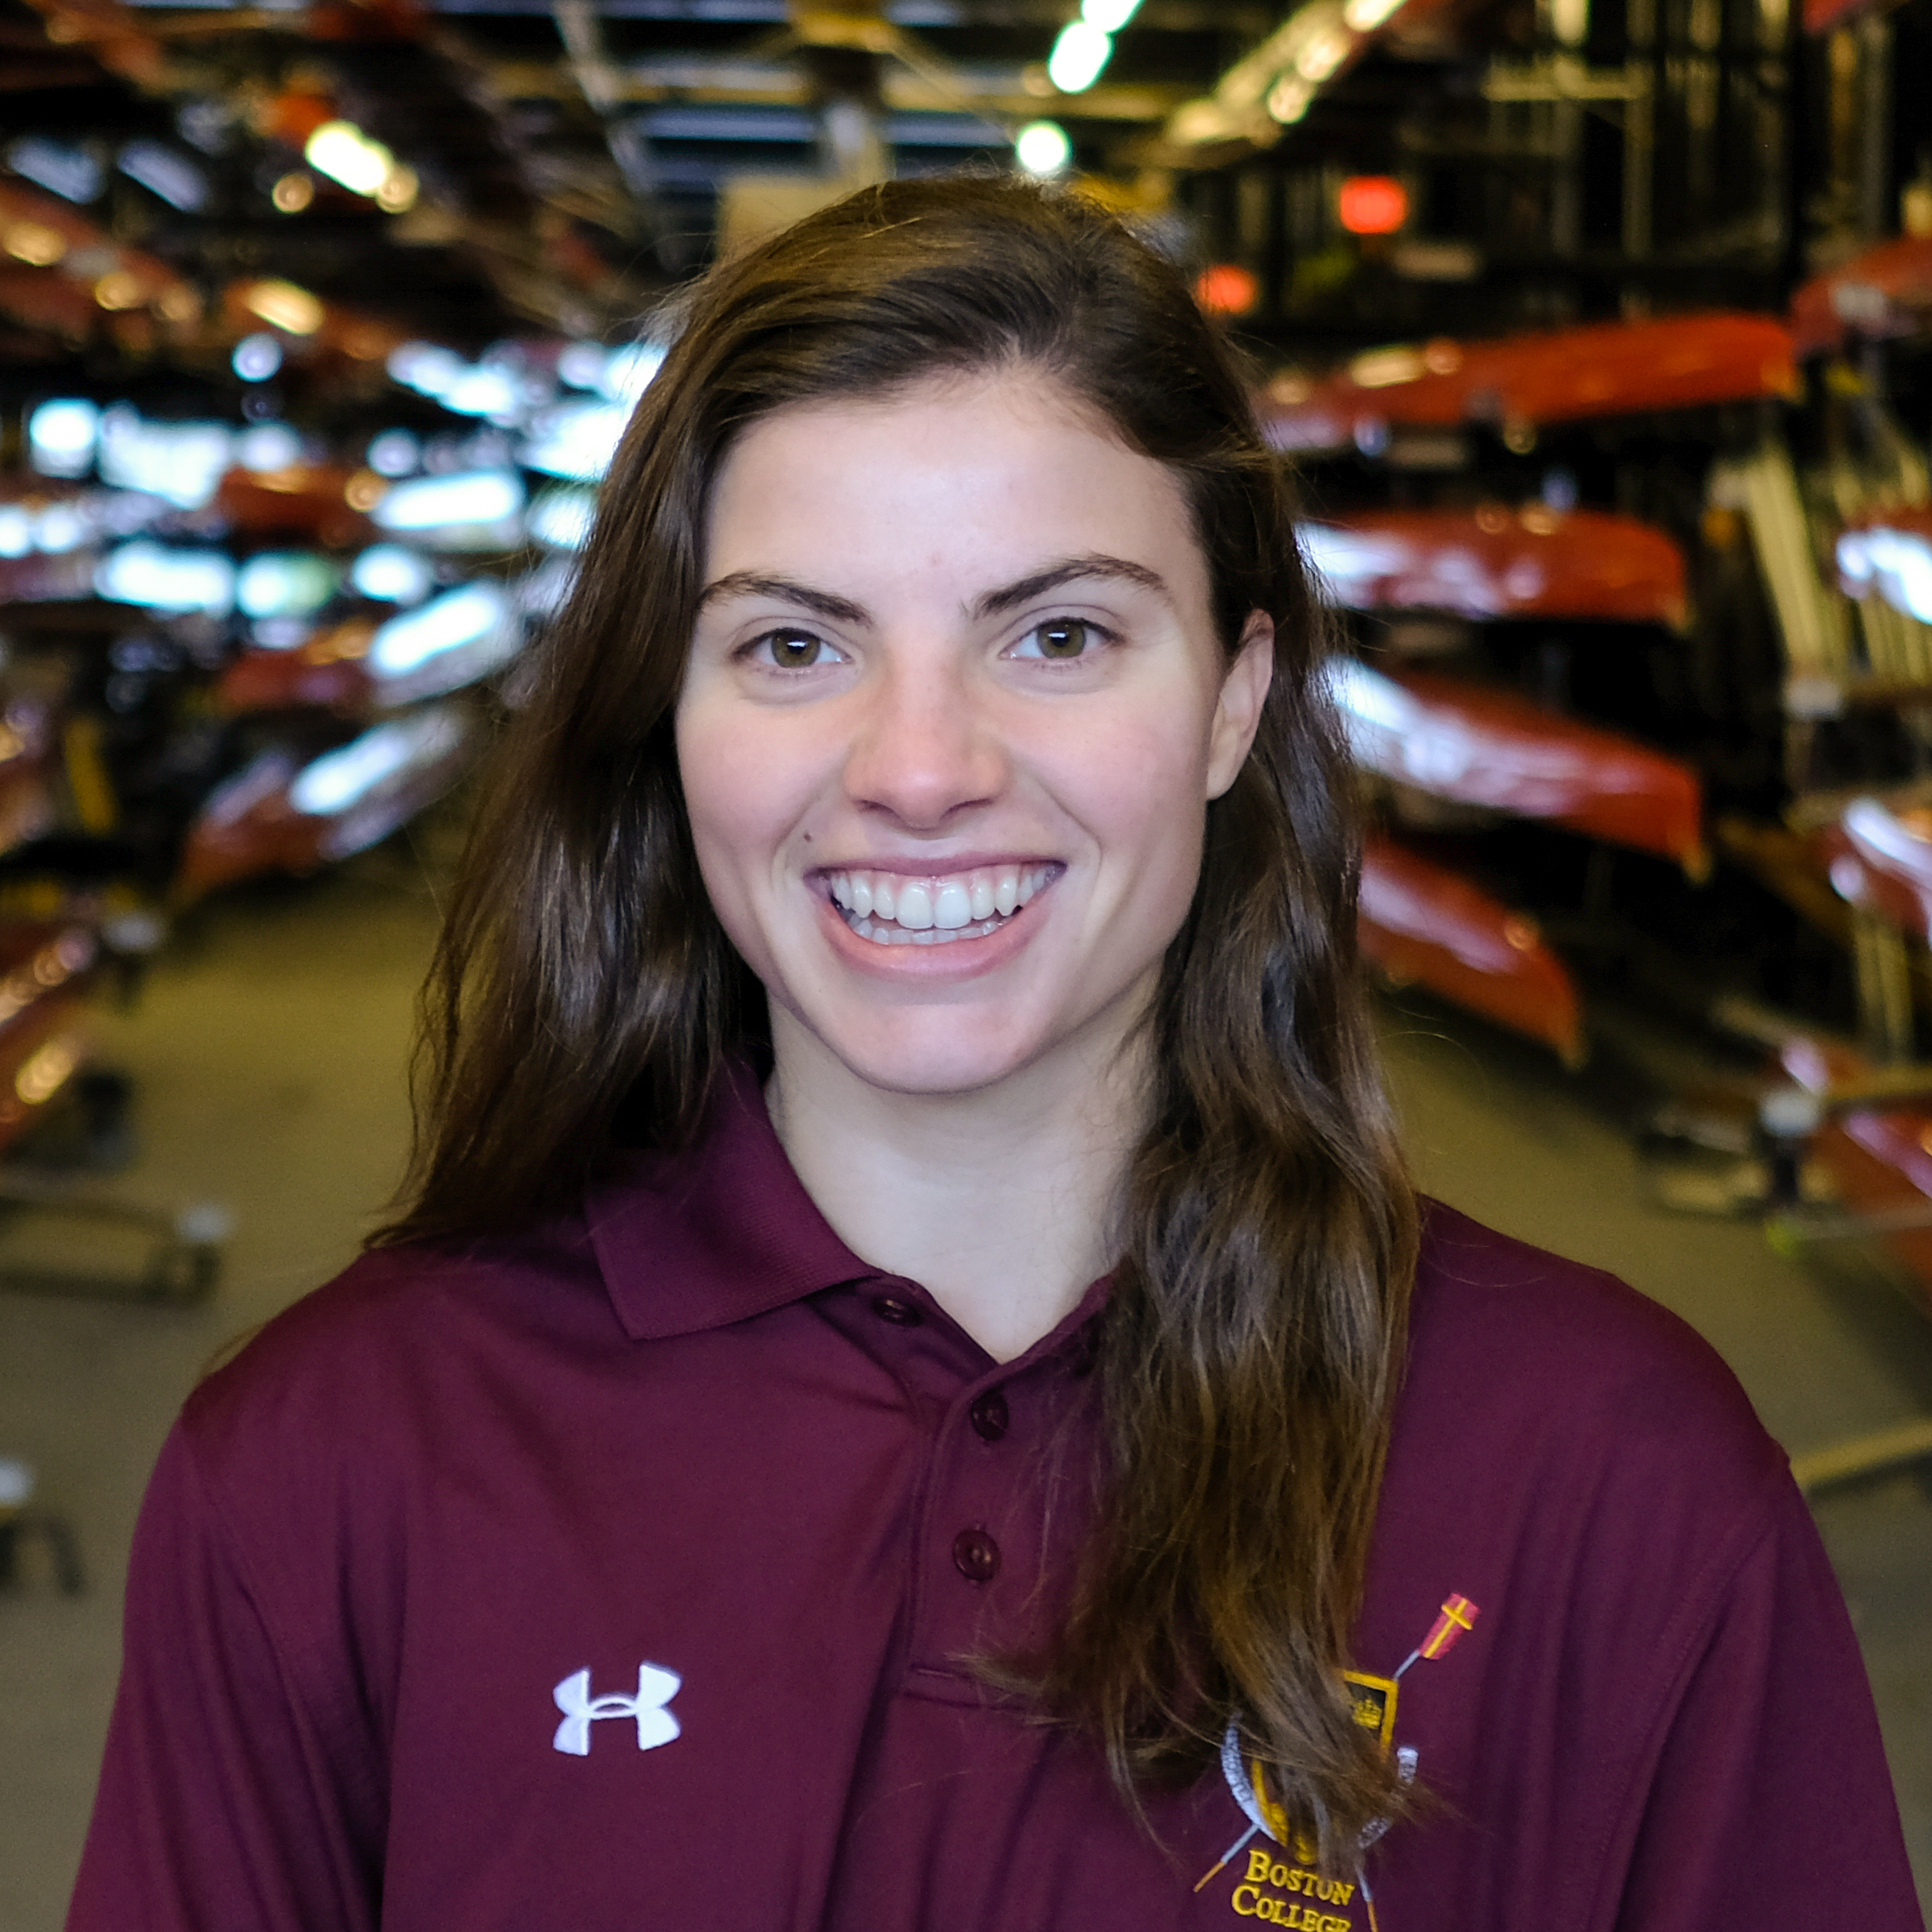 Sophia Bicks - Hometown: Ridgewood, NJClass: 2020Bio: Sophia is an Economics major with a minor in History. She began rowing in high school with Ridgewood Crew, competing in regattas such as Youth Nationals and Canadian Henley. She joined the team as a coxswain her sophomore year at BC. In her sophomore year, she was coxswain of the Varsity 8+, finishing the season with a silver medal at the ACRA National Championship.